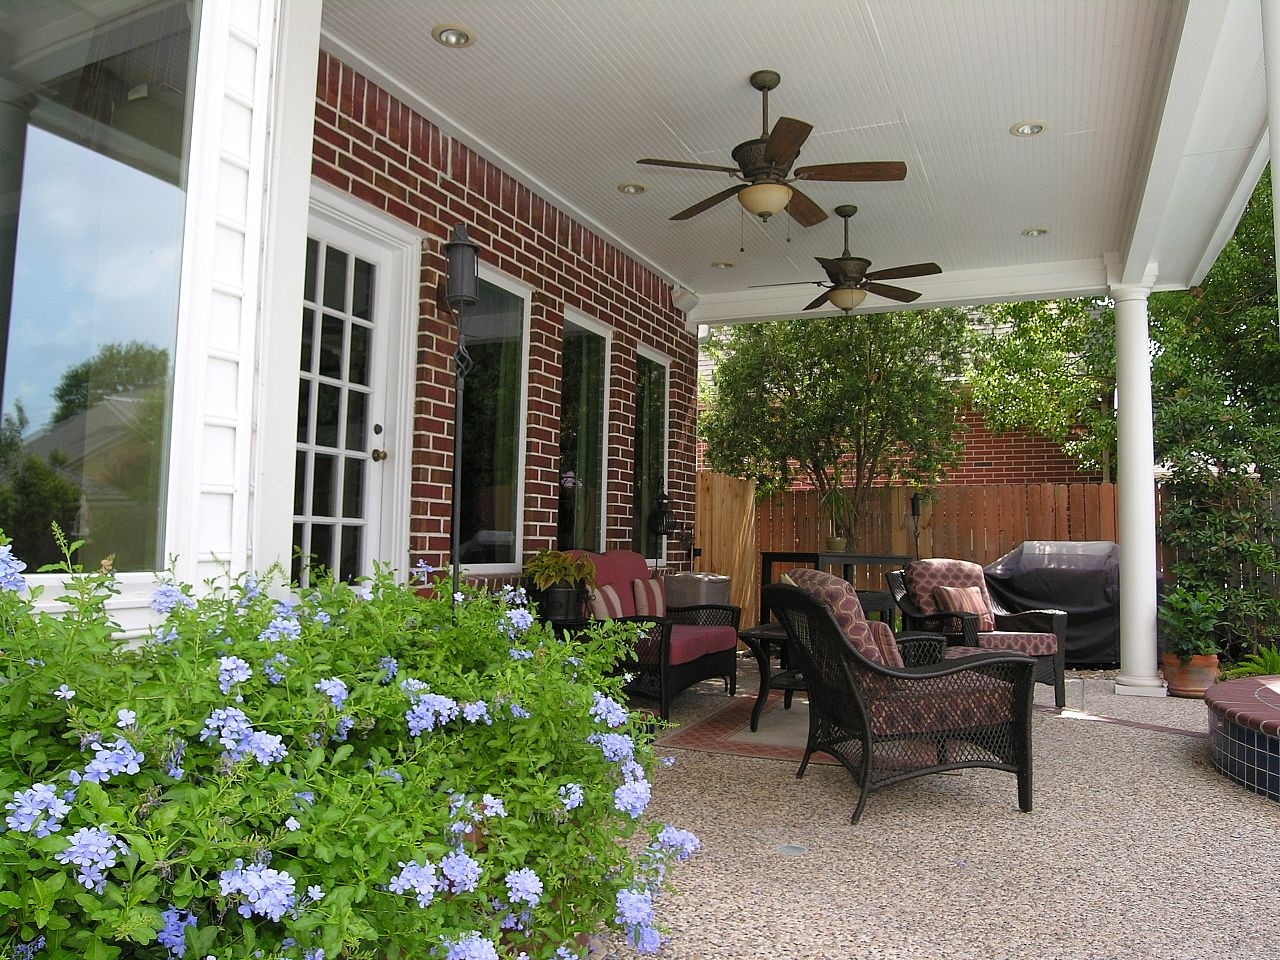 1000+ images about Outdoor Ceiling Fans on Pinterest | Outdoor ...